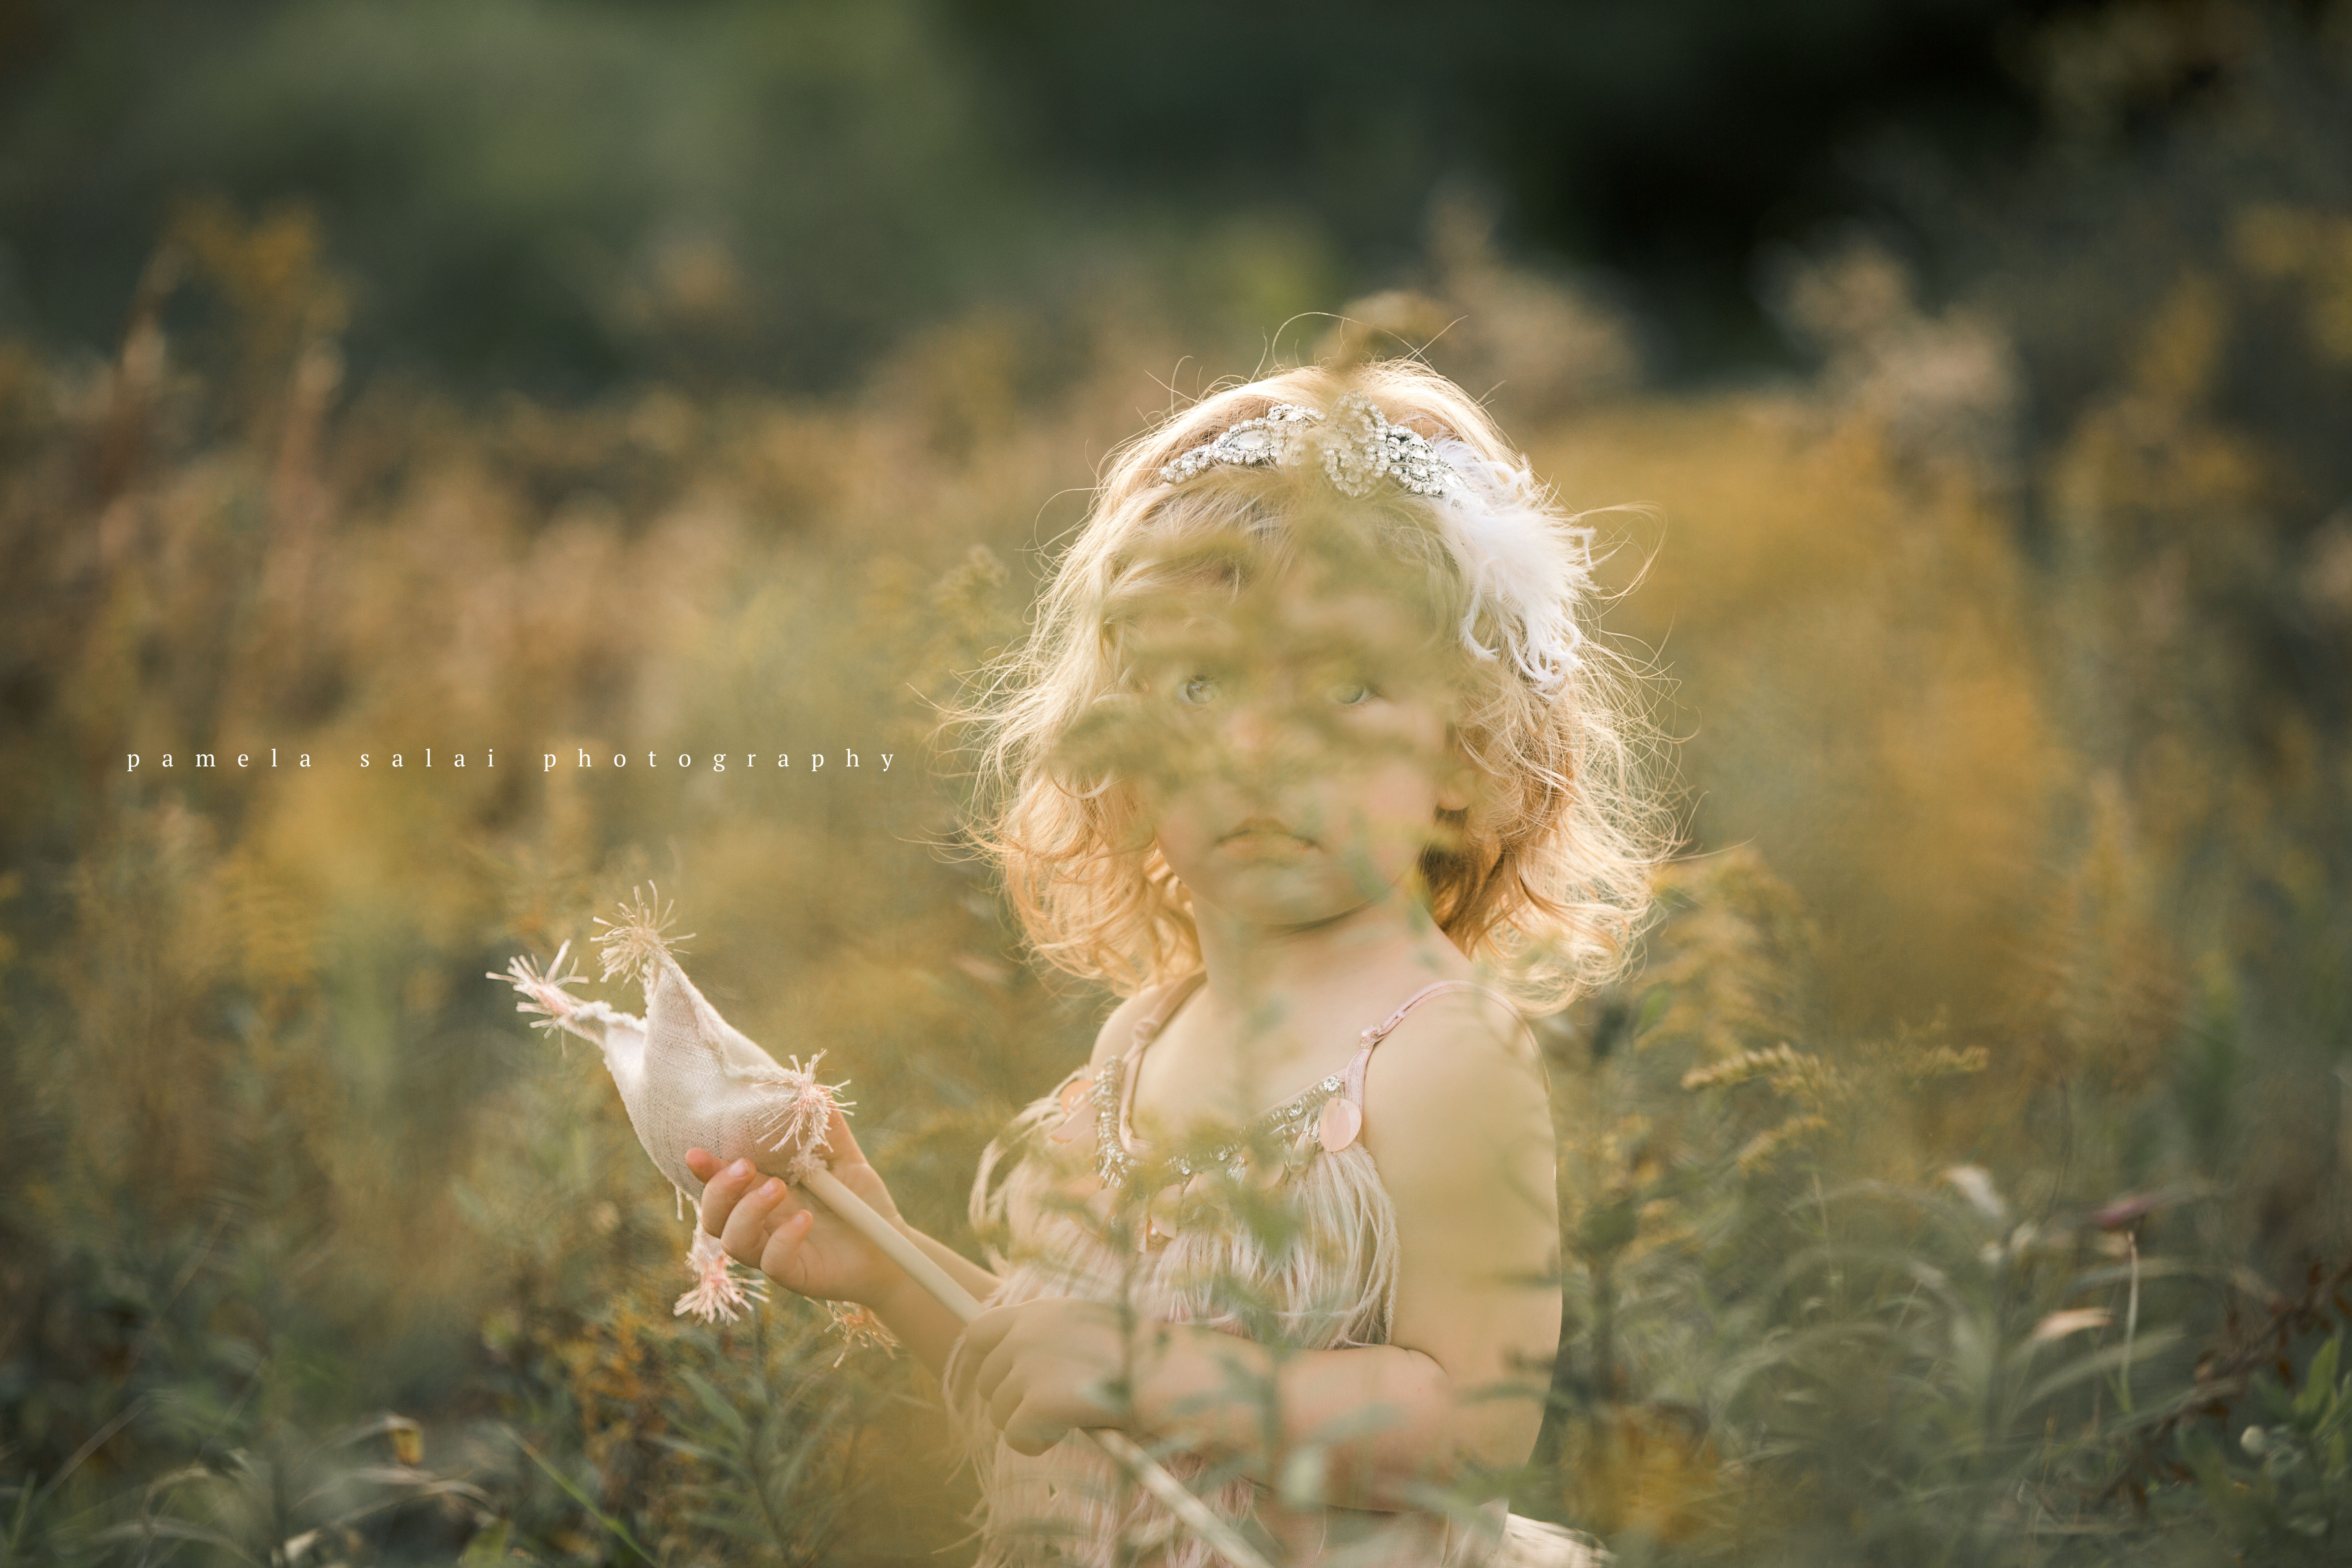 pamela-salai-photography artist pose idea star child magical